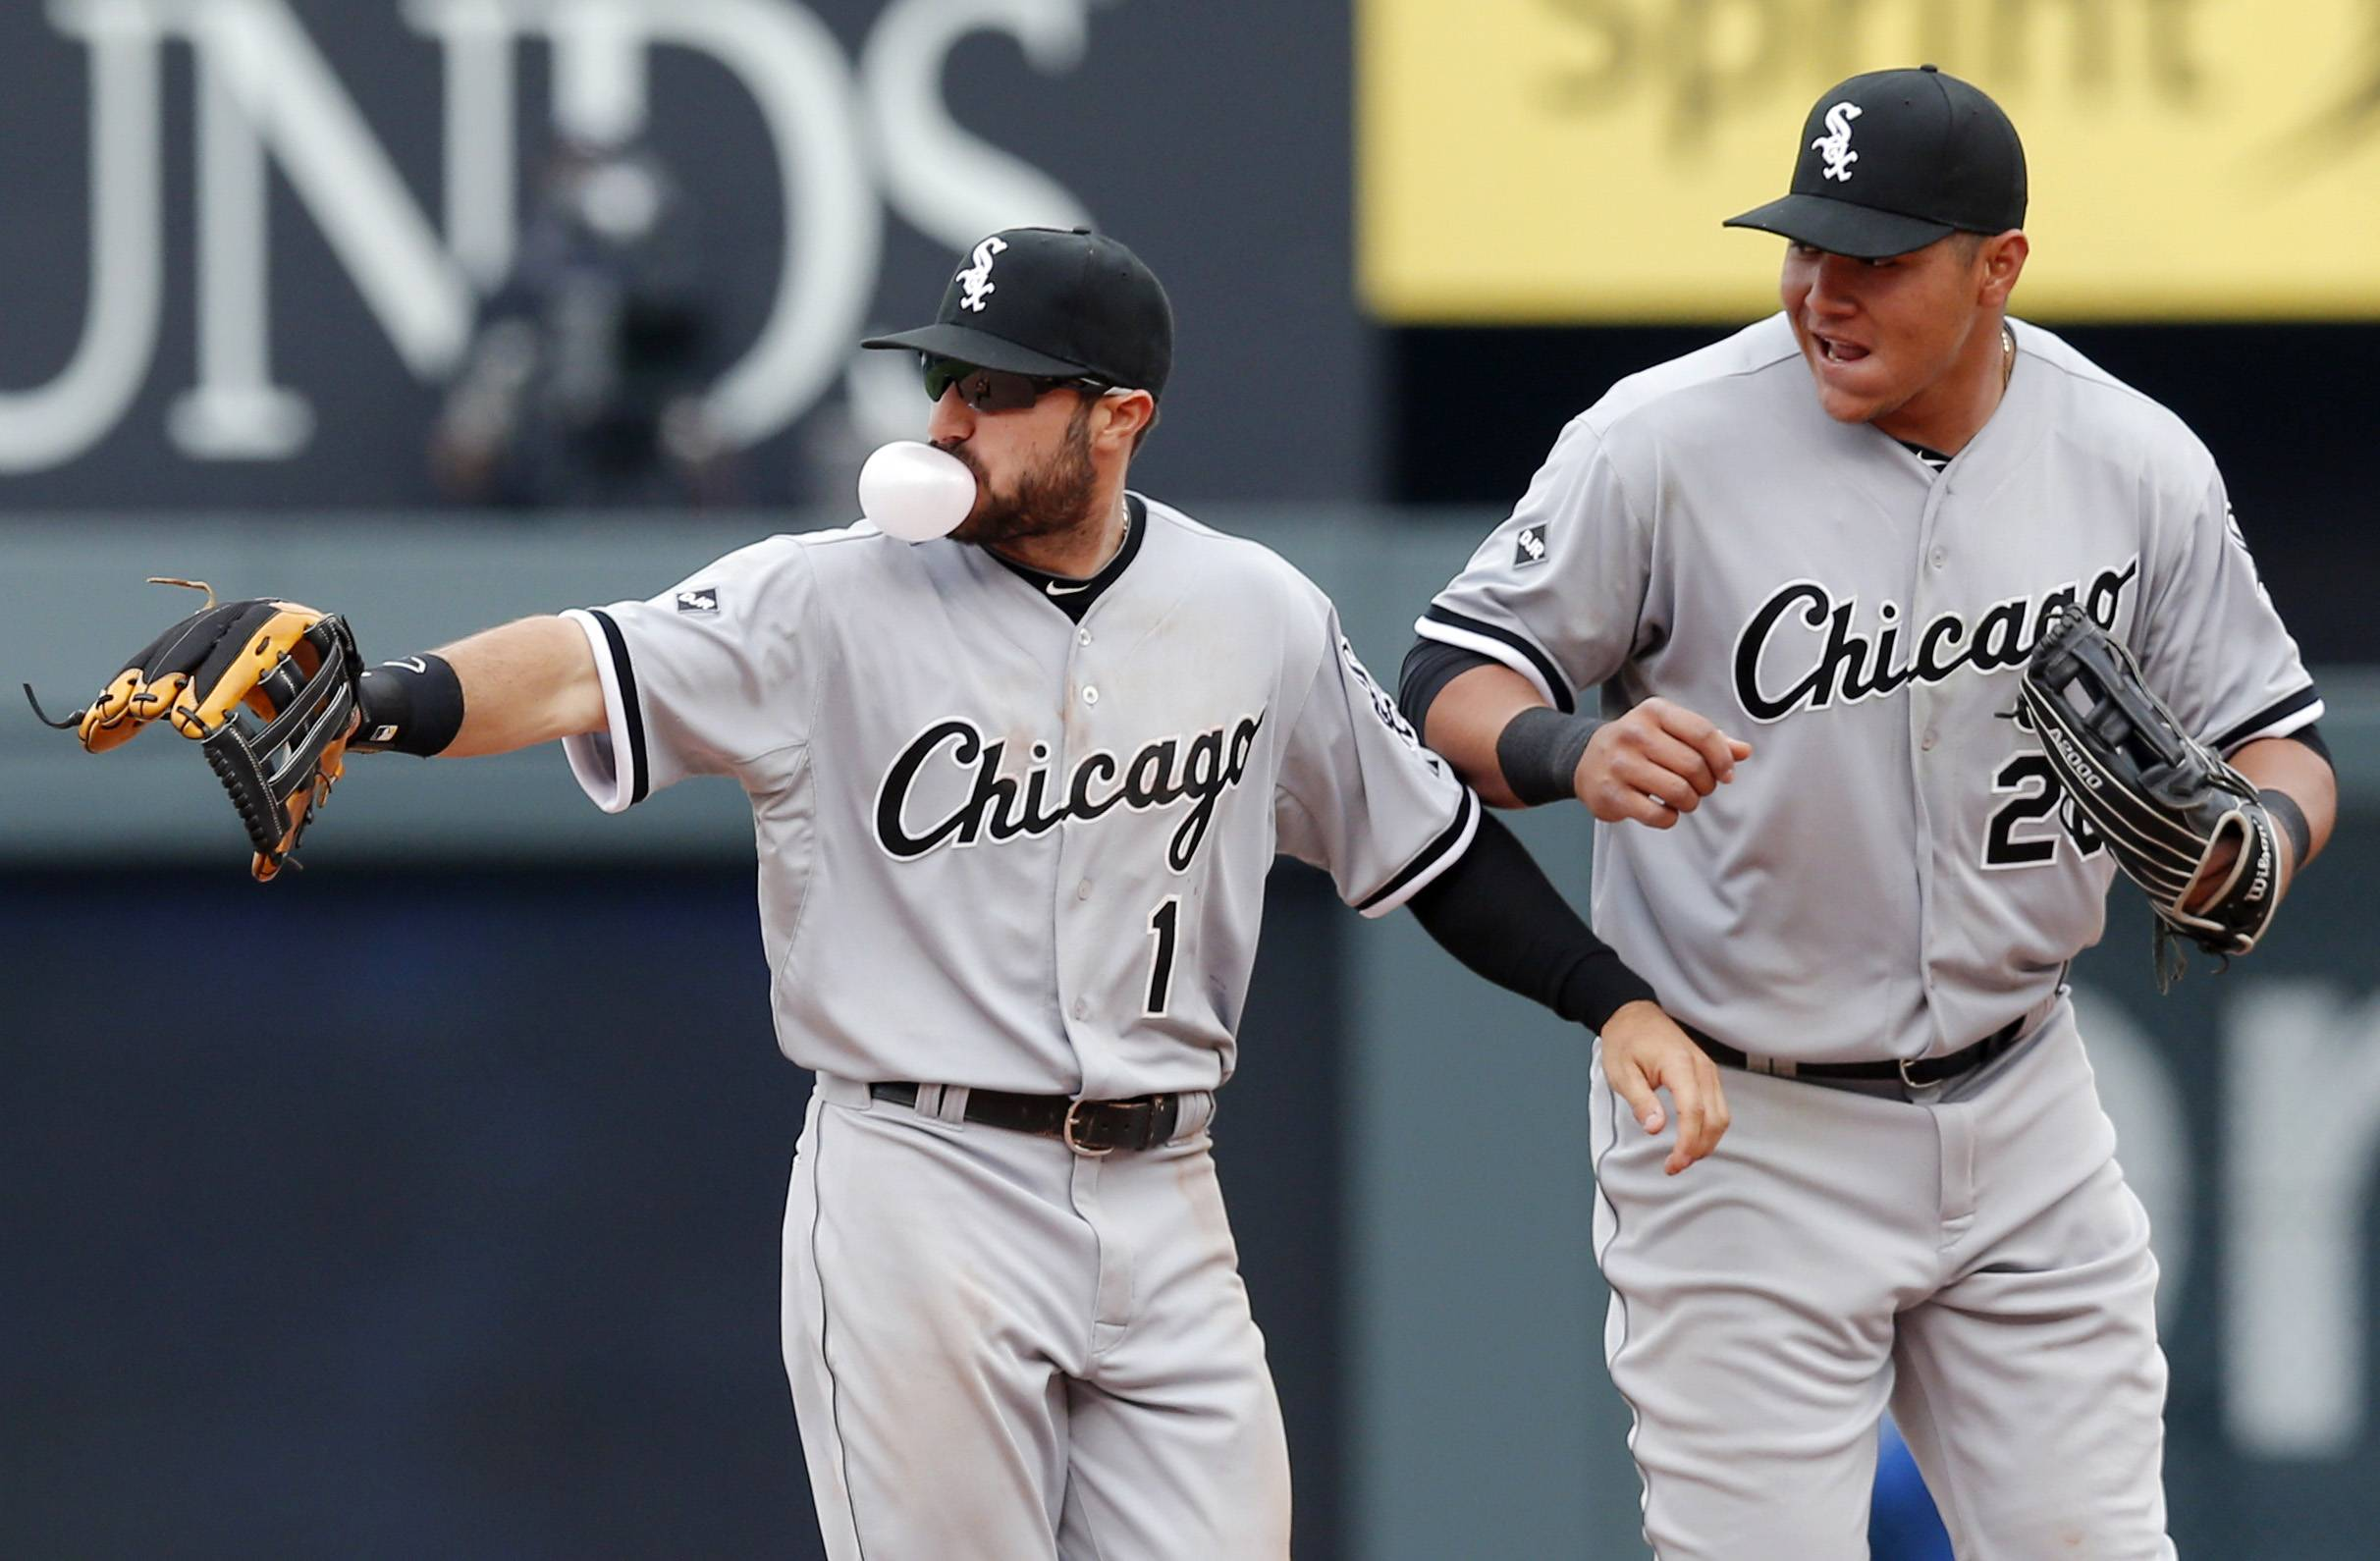 White Sox left fielder Adam Eaton (1) and right fielder Avisail Garcia (26) celebrate following a baseball game against the Kansas City Royals at Kauffman Stadium in Kansas City, Mo., Sunday, April 6, 2014. The White Sox won 5-1.